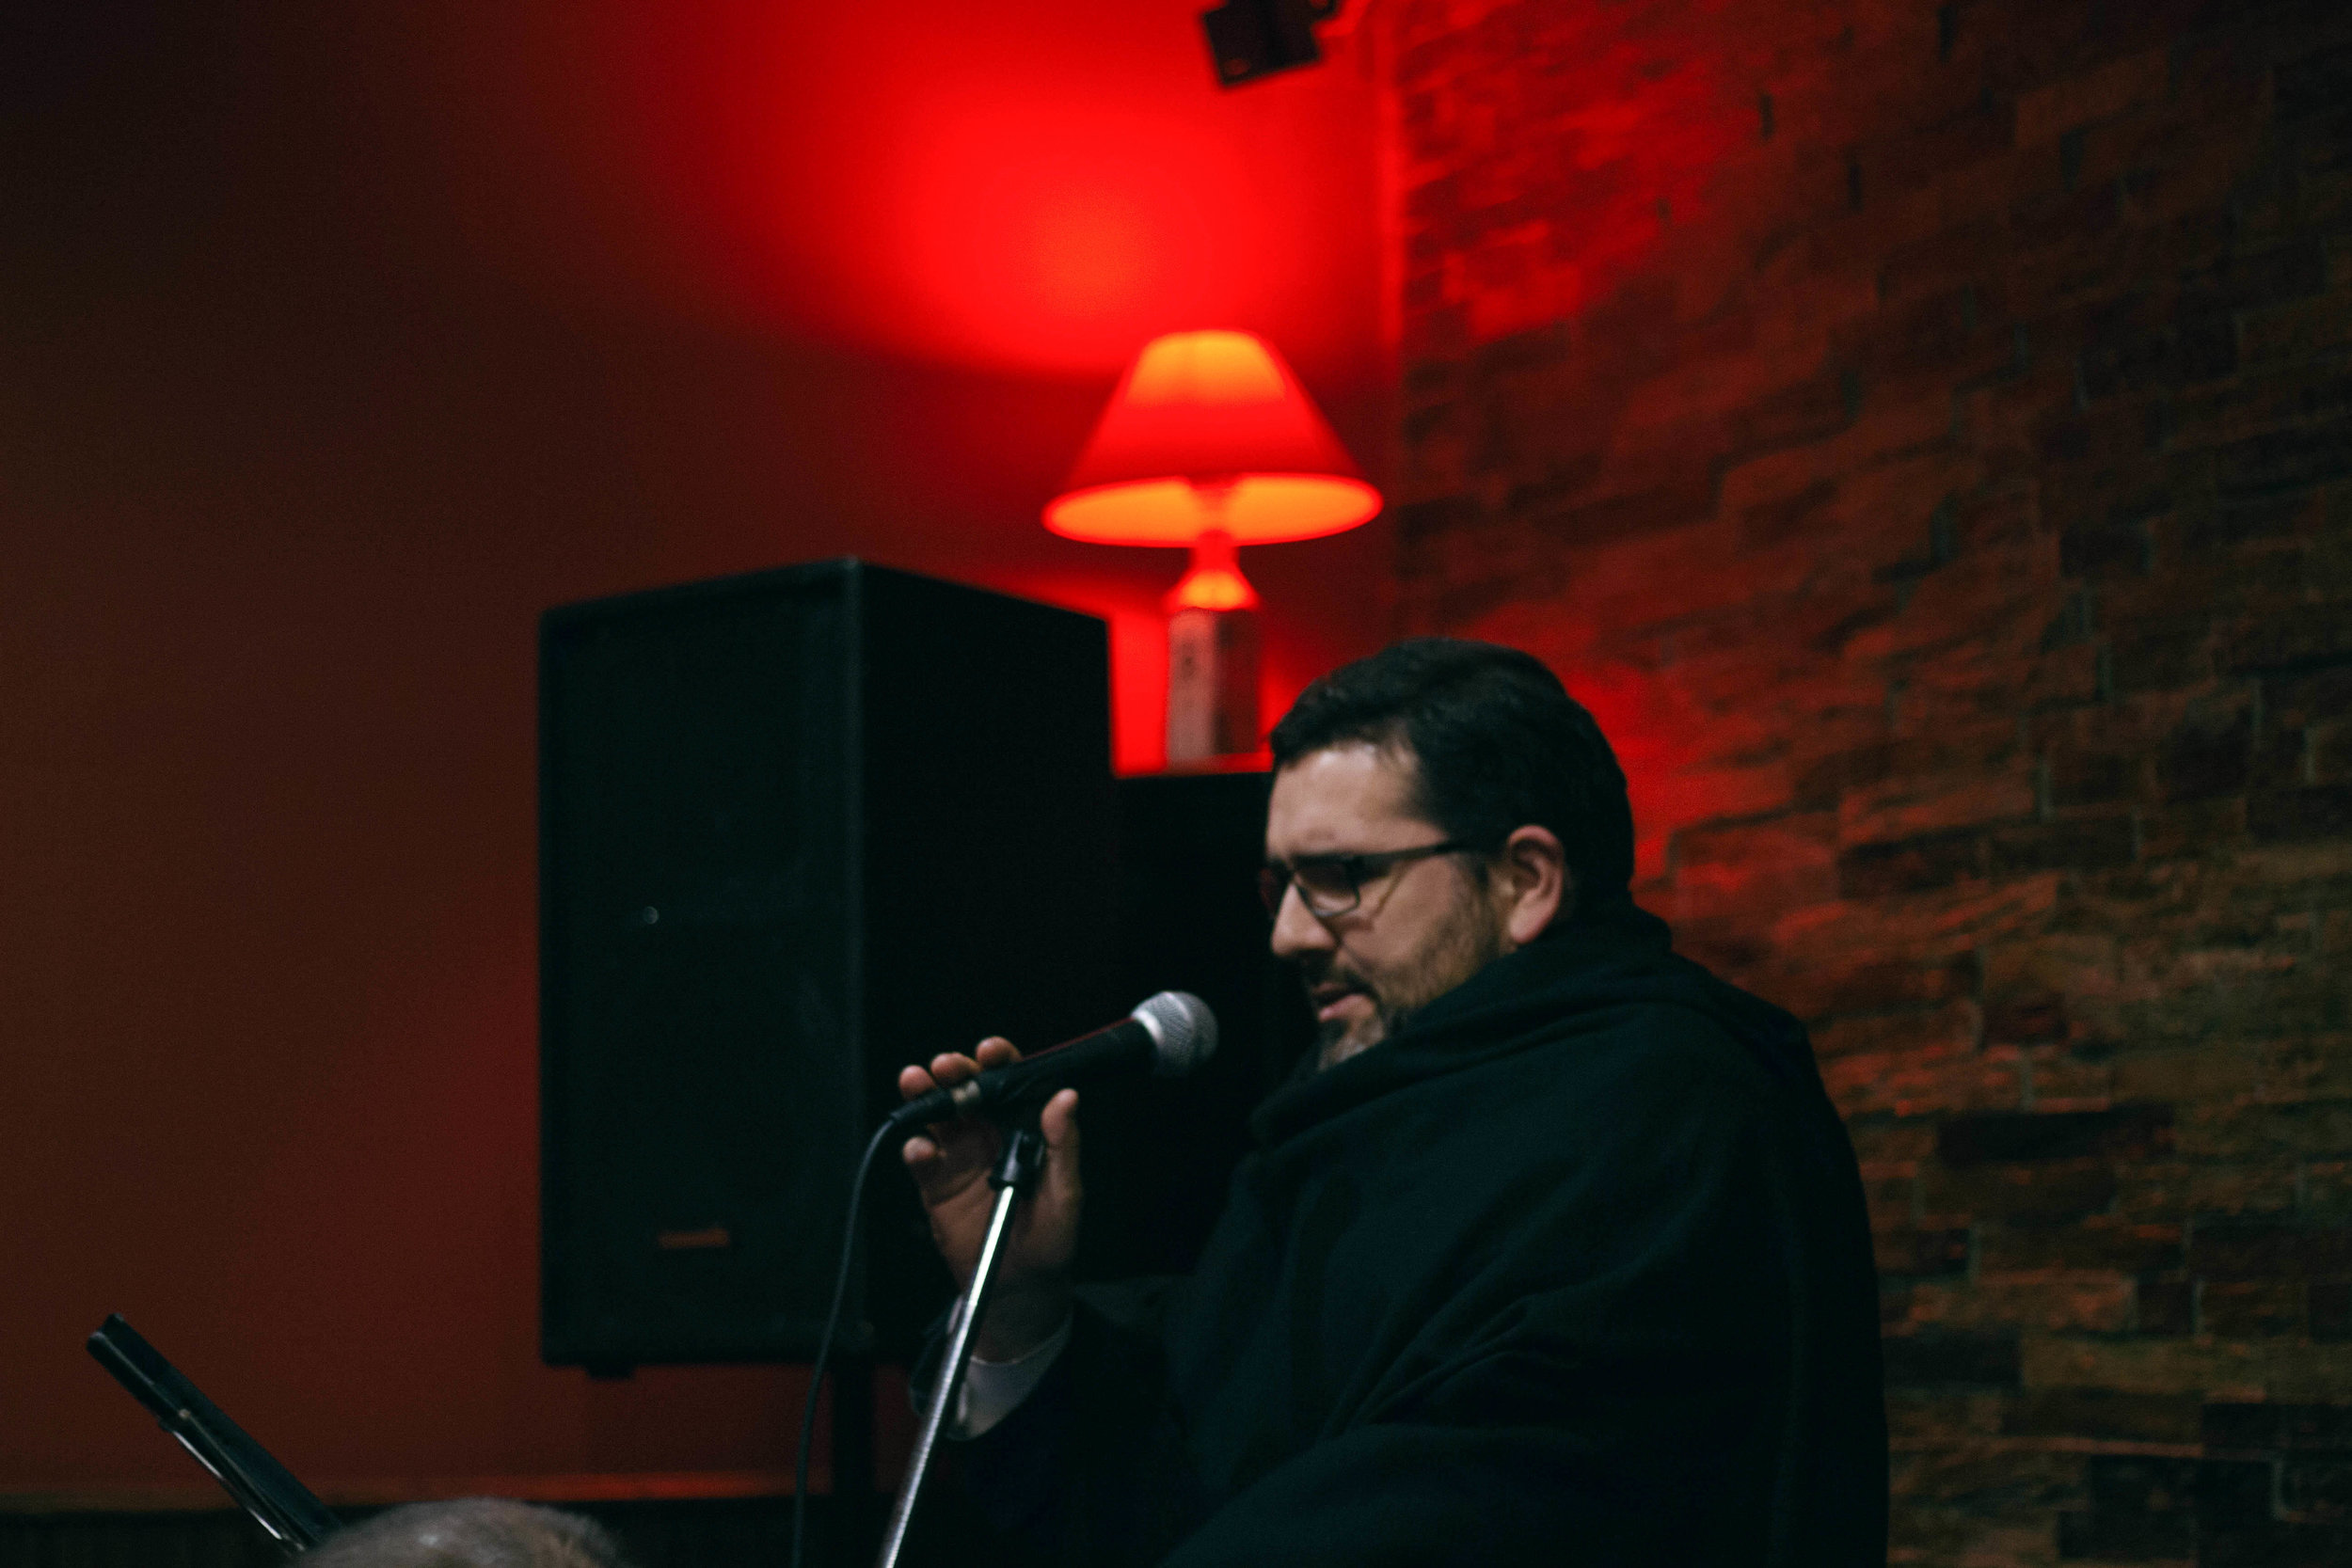 GONÇALO MENDES - VOCALSHe formally began his career at Orfeon Académico de Coimbra and currently counts over 20 years of collaboration with several Coimbra's Fado groups. Has already performed live a bit throughout the world and was invited to diverse records and TV shows.